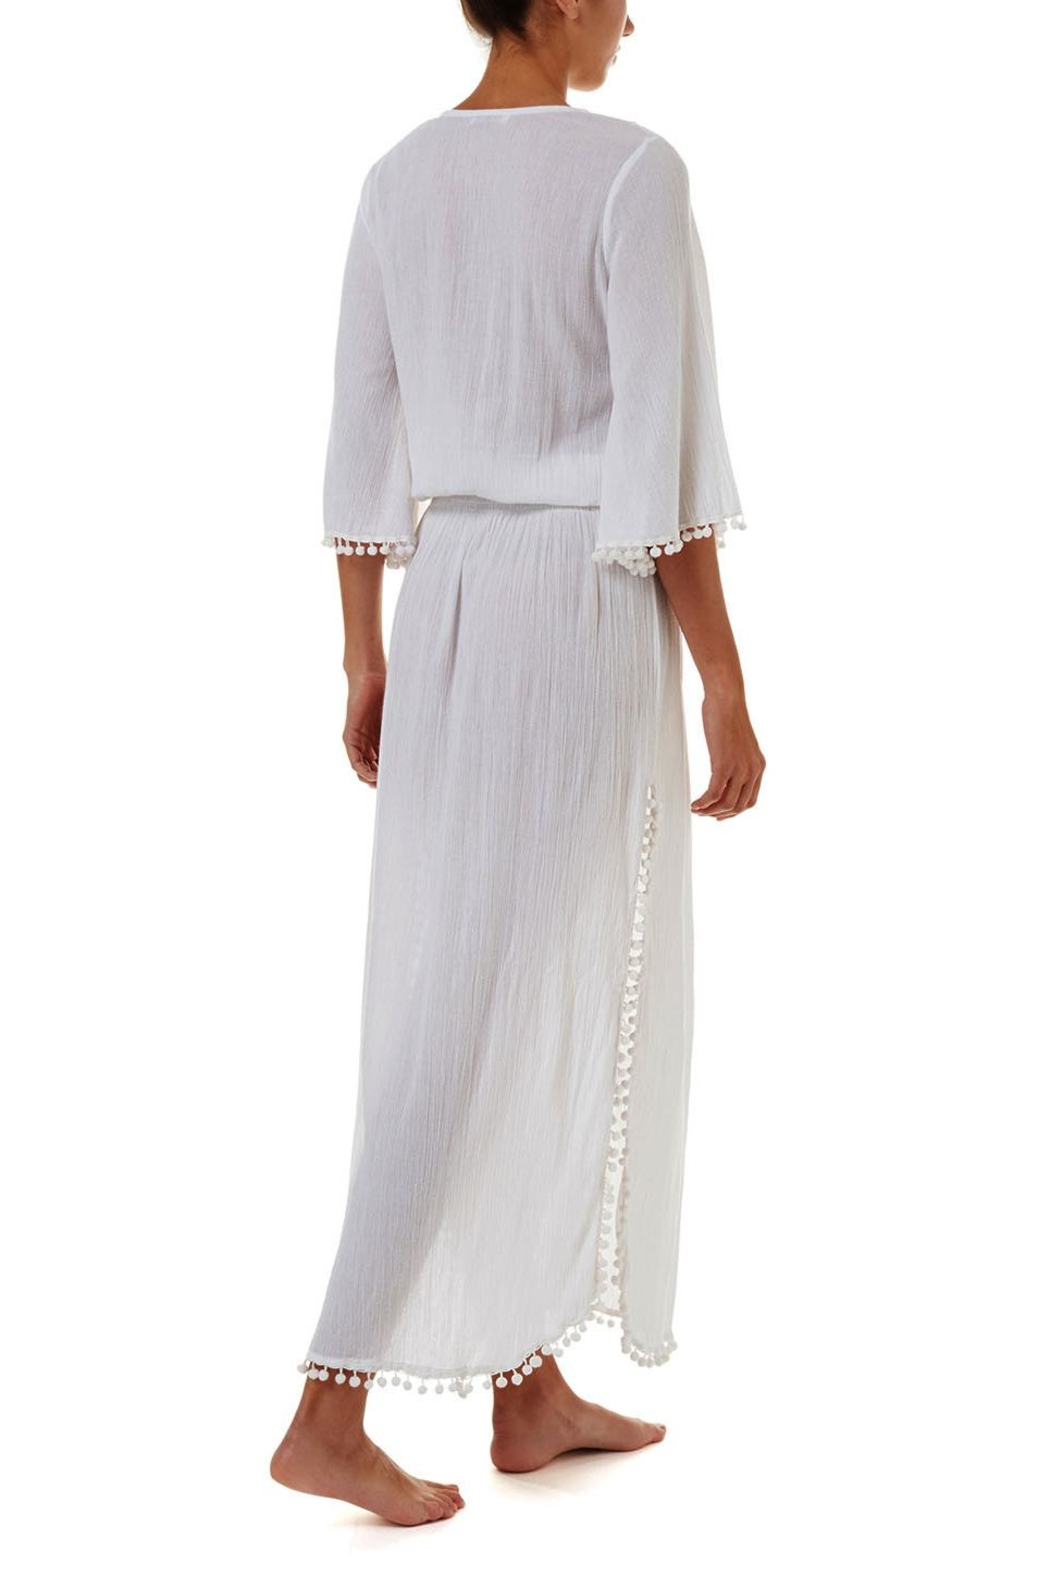 Melissa Odabash Kari Maxi Dress - Side Cropped Image